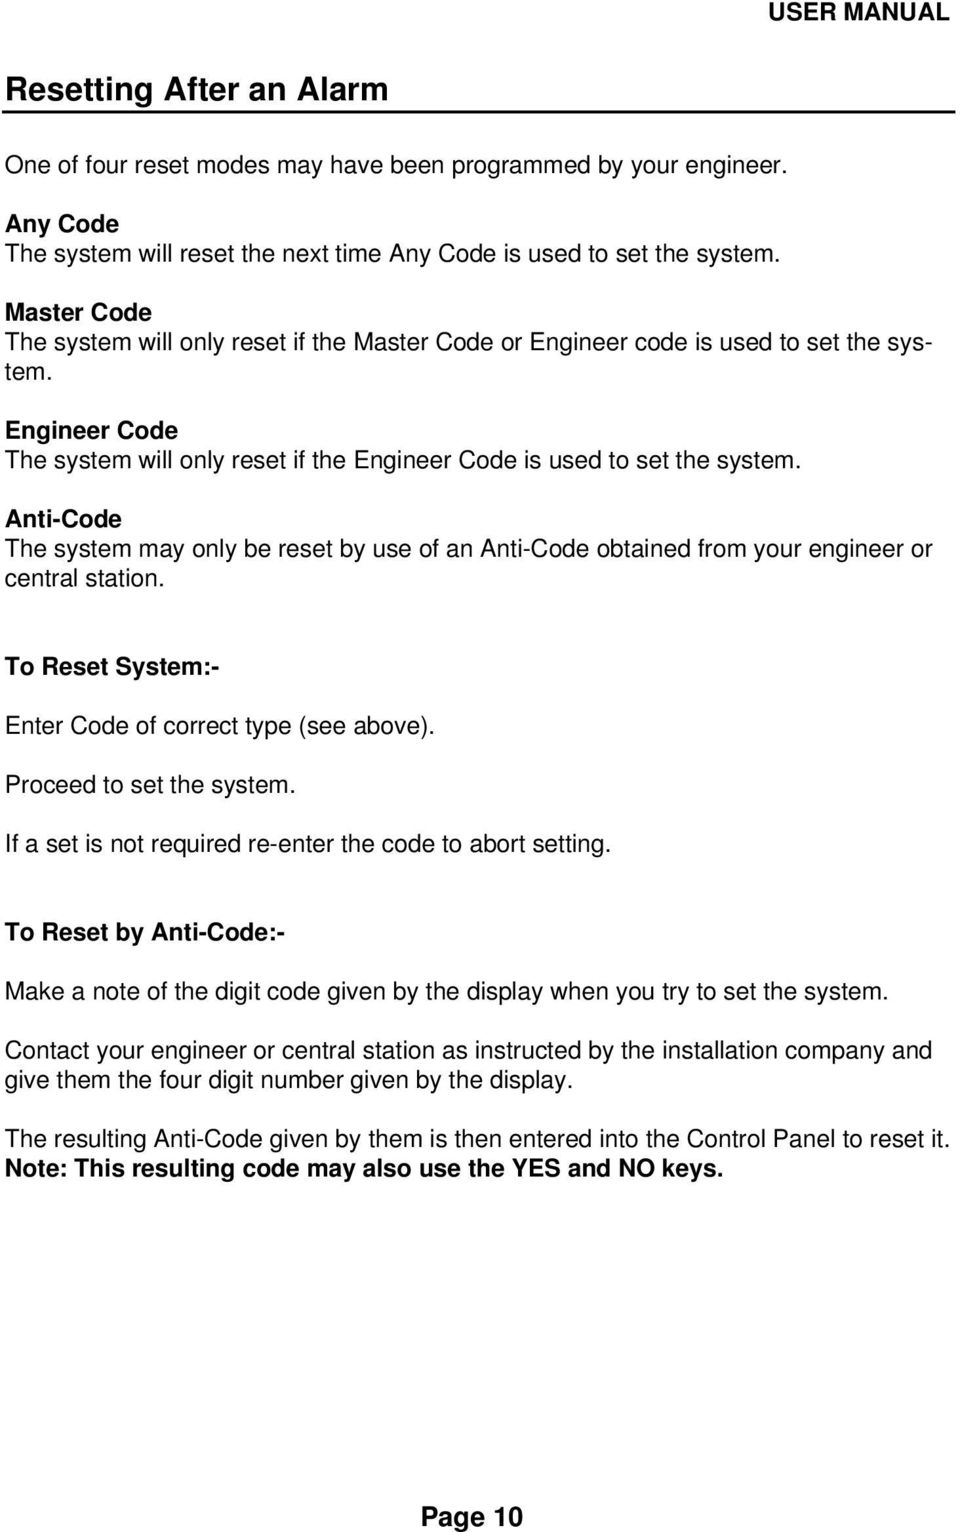 Anti-Code The system may only be reset by use of an Anti-Code